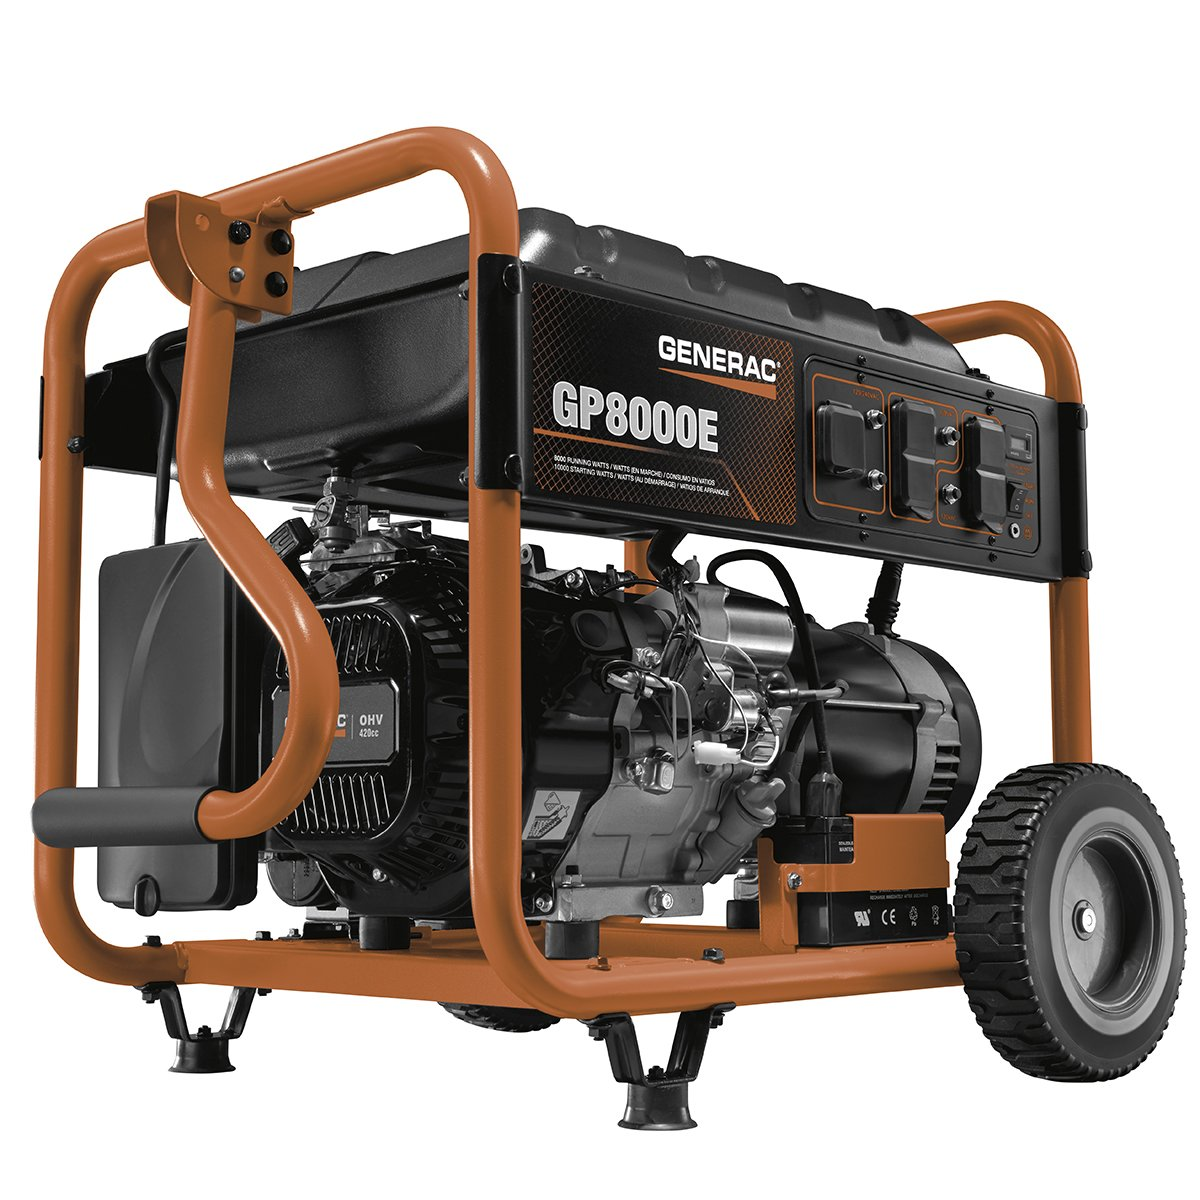 Generac 6954 GP8000E 8,000 Running Watts/10,000 Starting Watts Electric Start Gas Powered Portable Generator - CSA Compliant by Generac